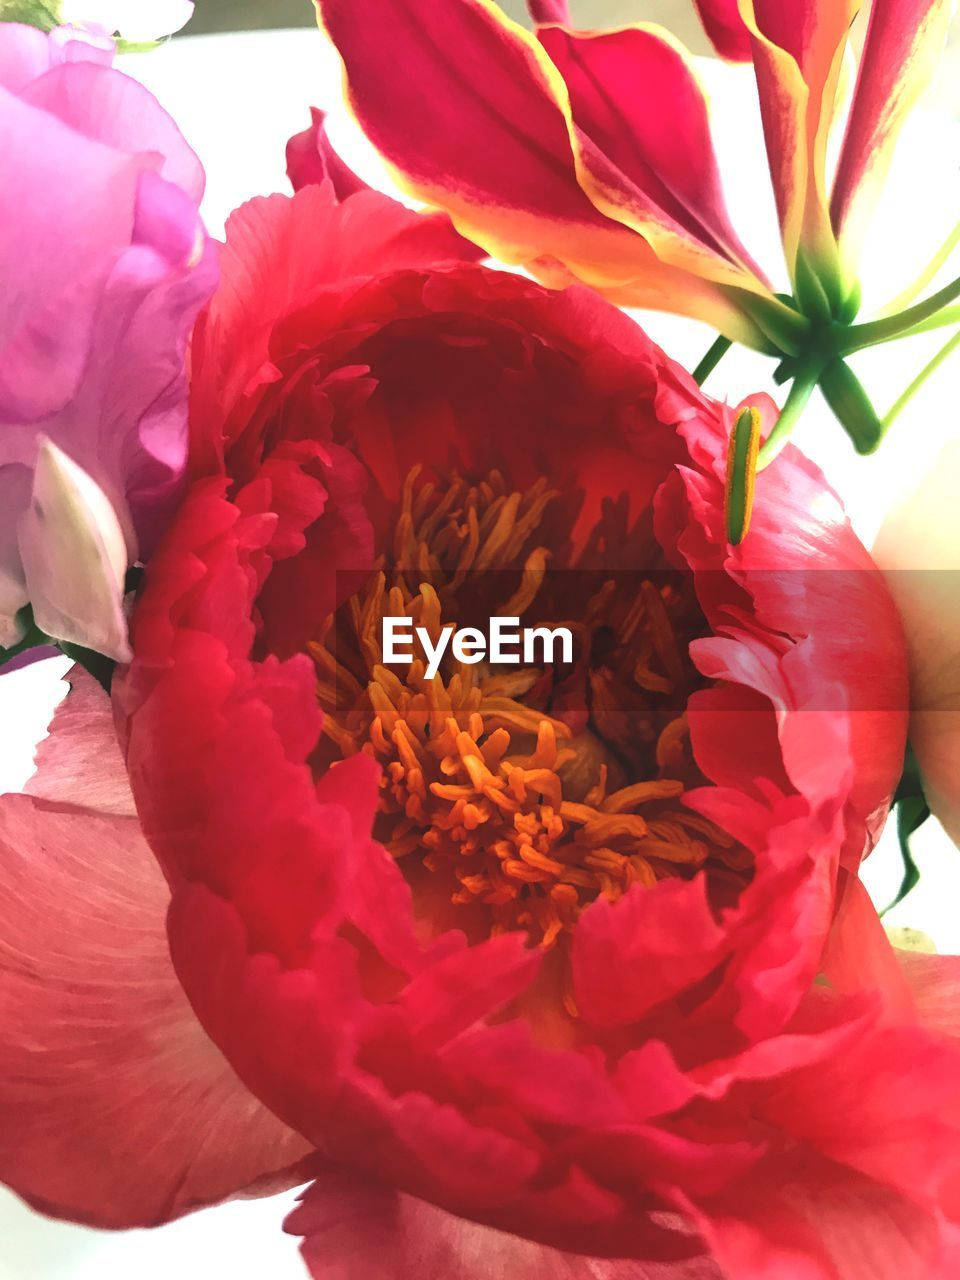 flowering plant, flower, plant, freshness, petal, flower head, vulnerability, fragility, beauty in nature, inflorescence, close-up, red, nature, growth, pink color, focus on foreground, day, no people, outdoors, pollen, flower arrangement, bouquet